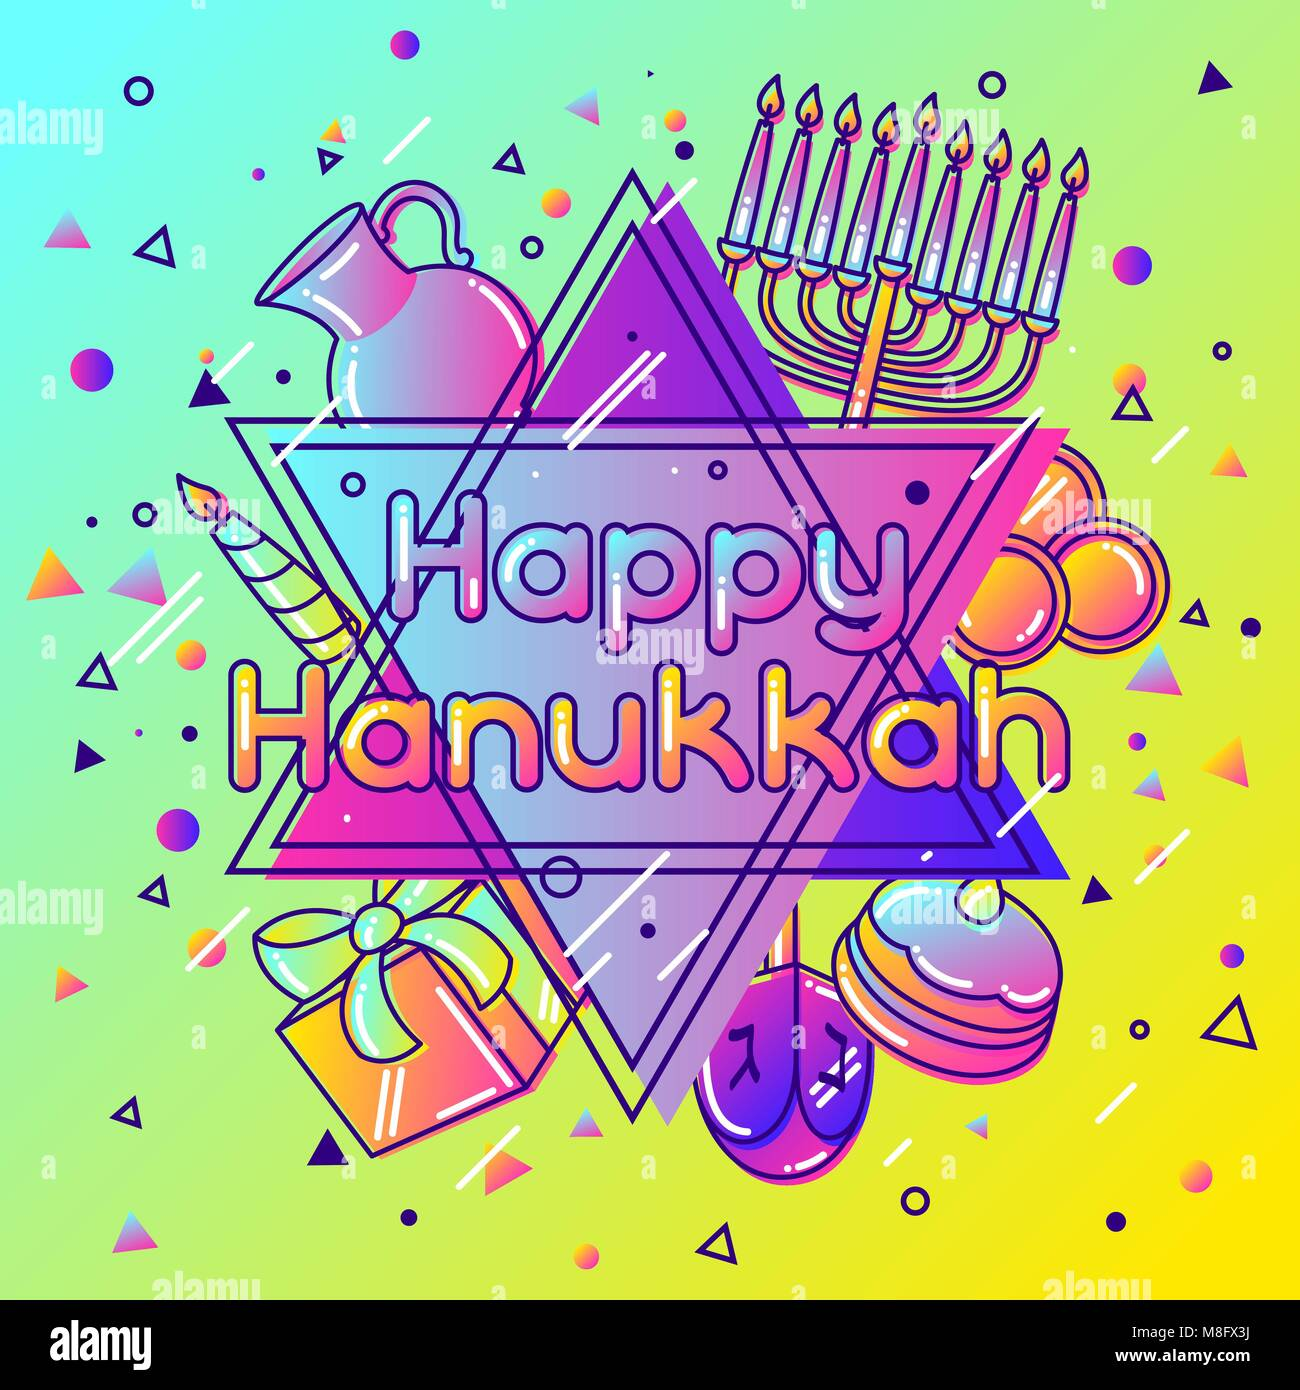 Happy Hanukkah greeting card with holiday objects - Stock Vector